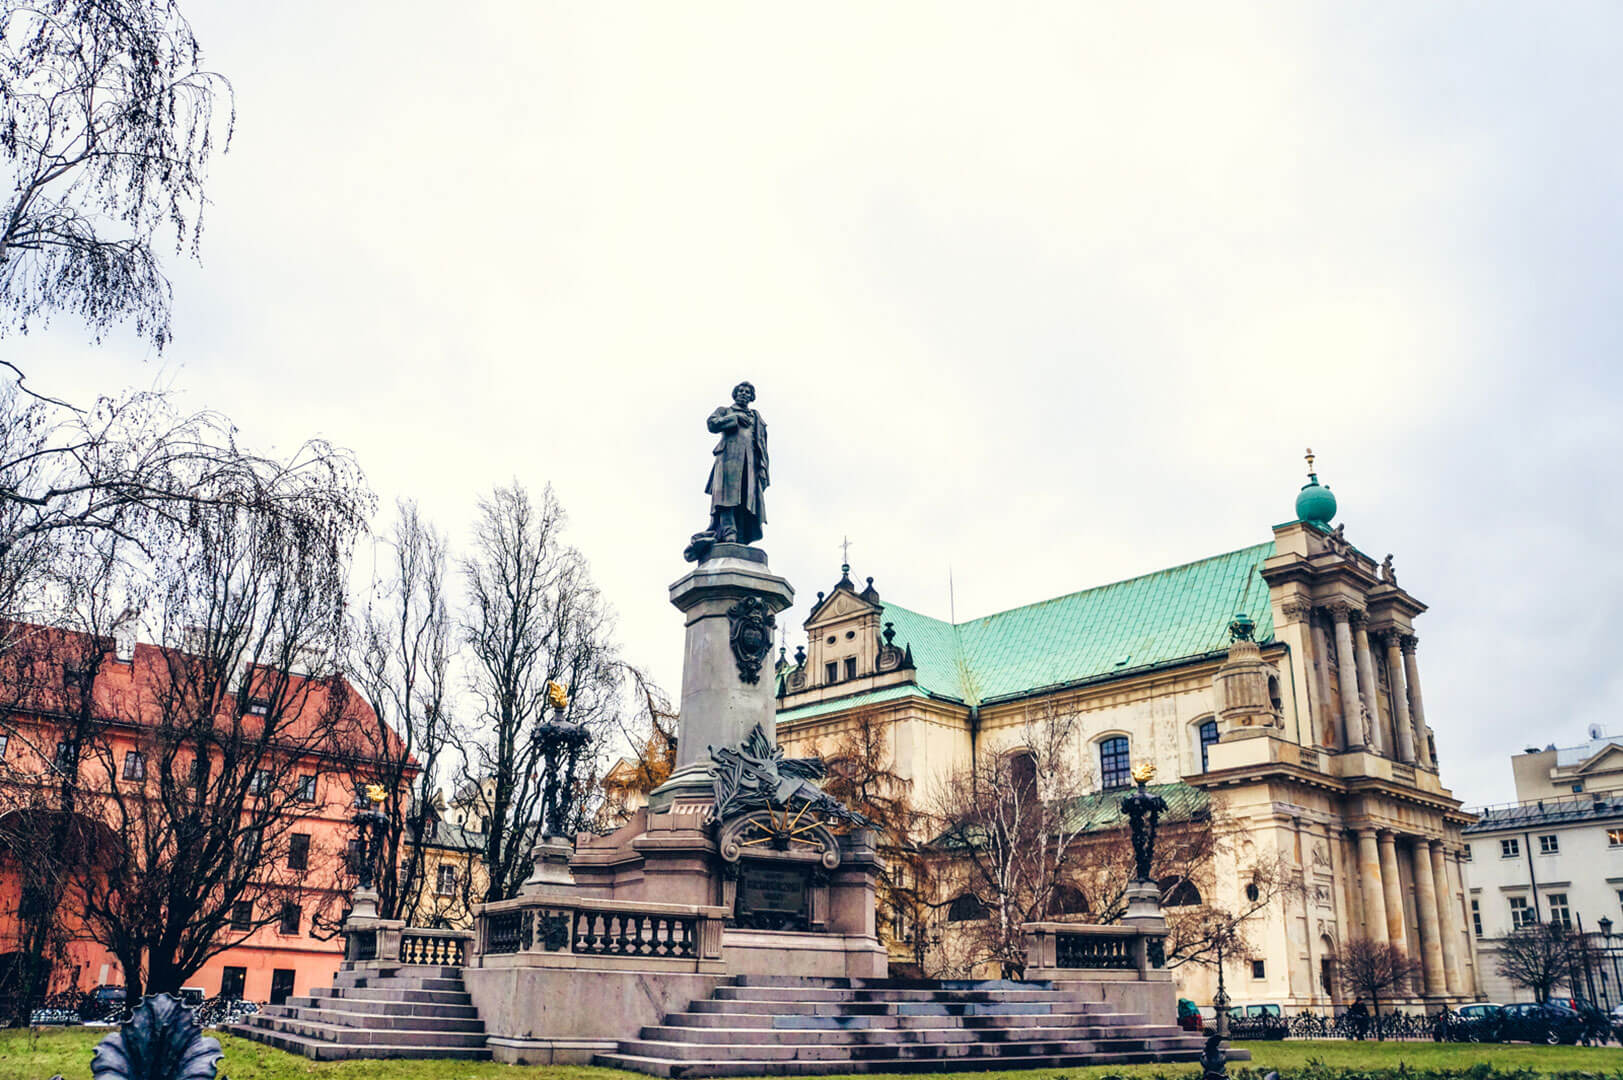 warsaw-poland-guide-la-vie-en-blog-all-rights-reserved-54